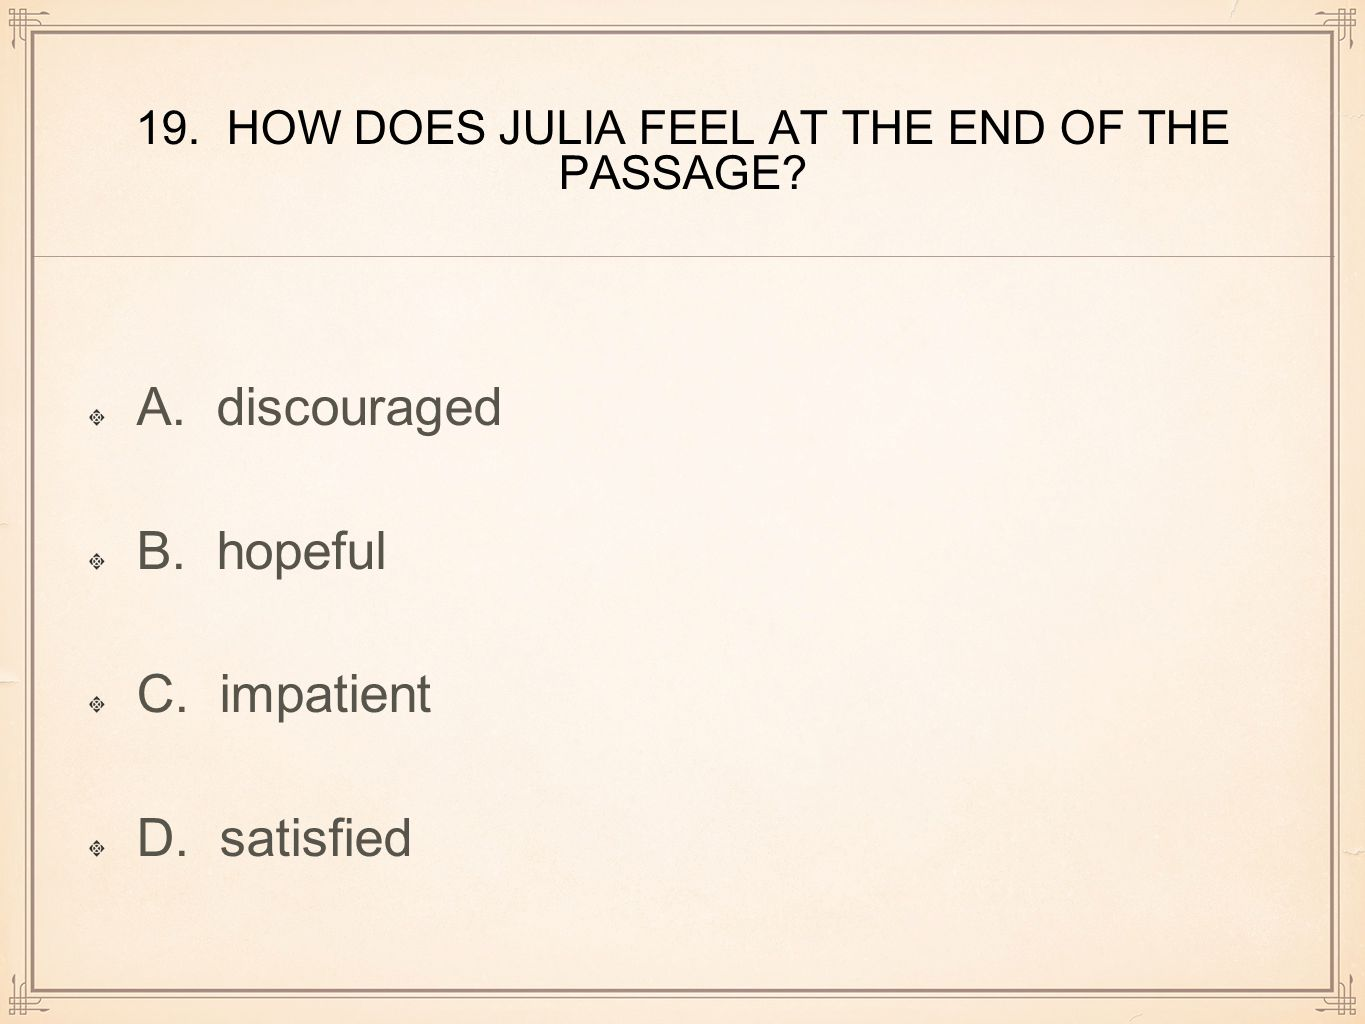 19. HOW DOES JULIA FEEL AT THE END OF THE PASSAGE